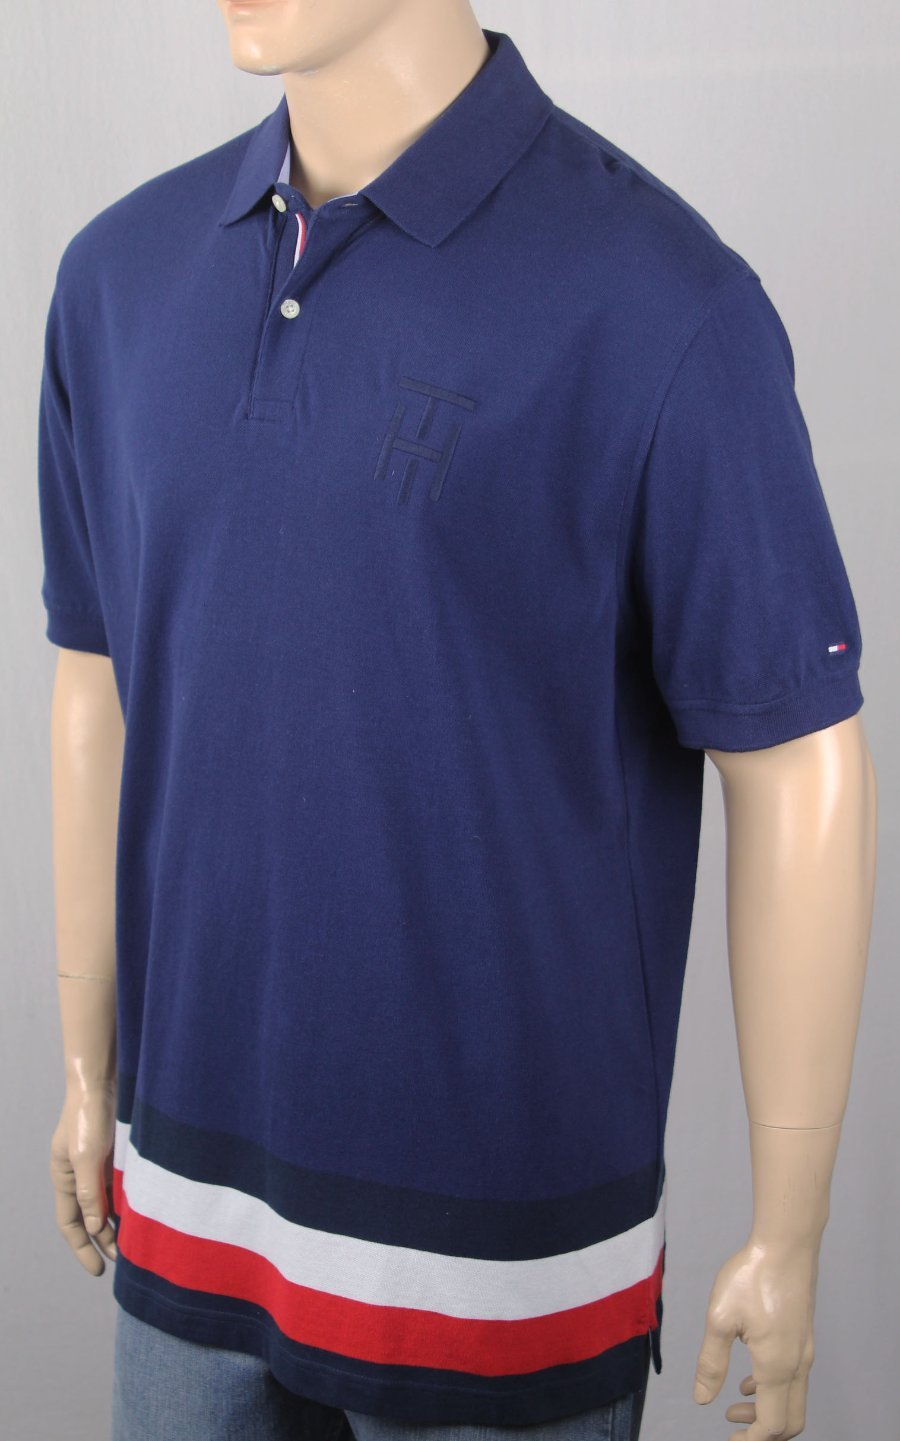 41afef50 Details about Tommy Hilfiger Navy Blue Custom Fit Polo Mesh Shirt NWT